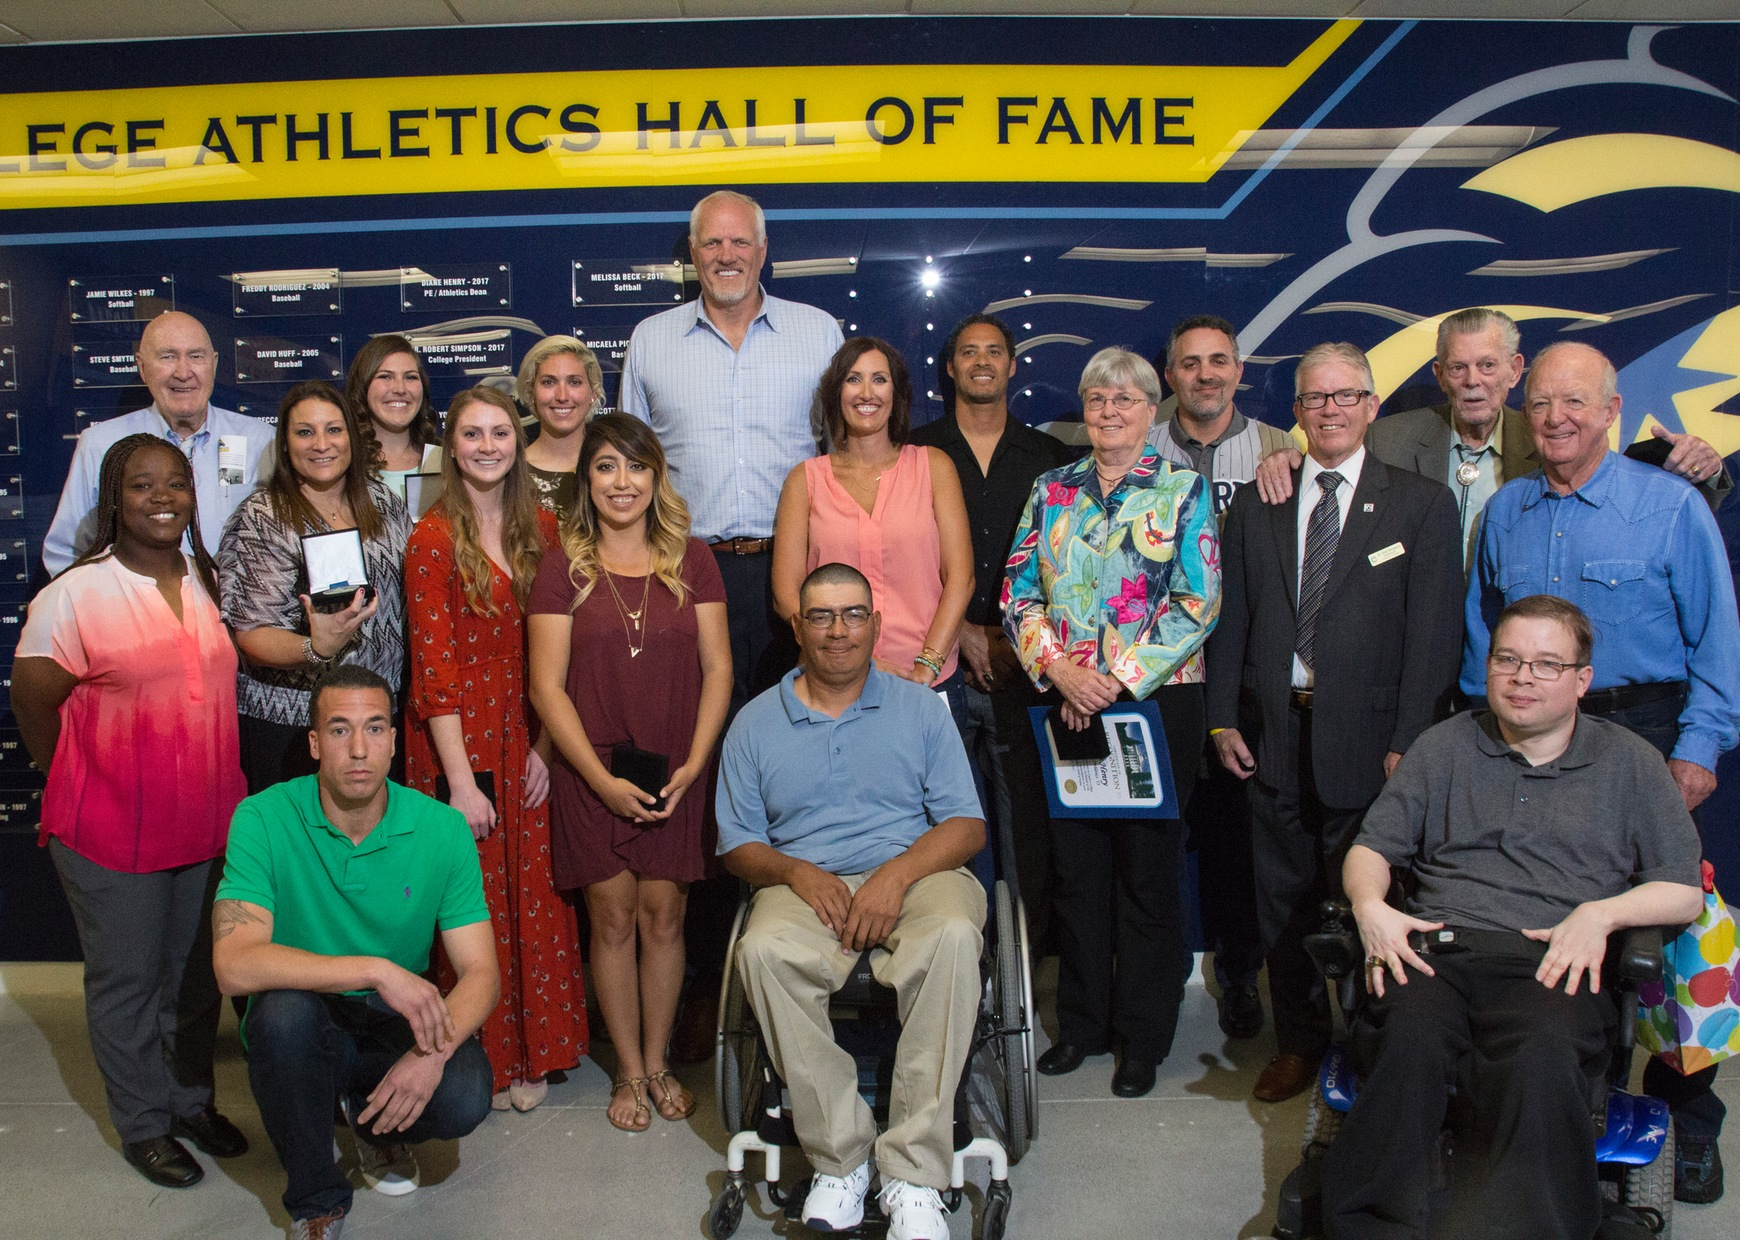 Chargers Celebrate 50th Anniversary with Inaugural Hall of Fame Event